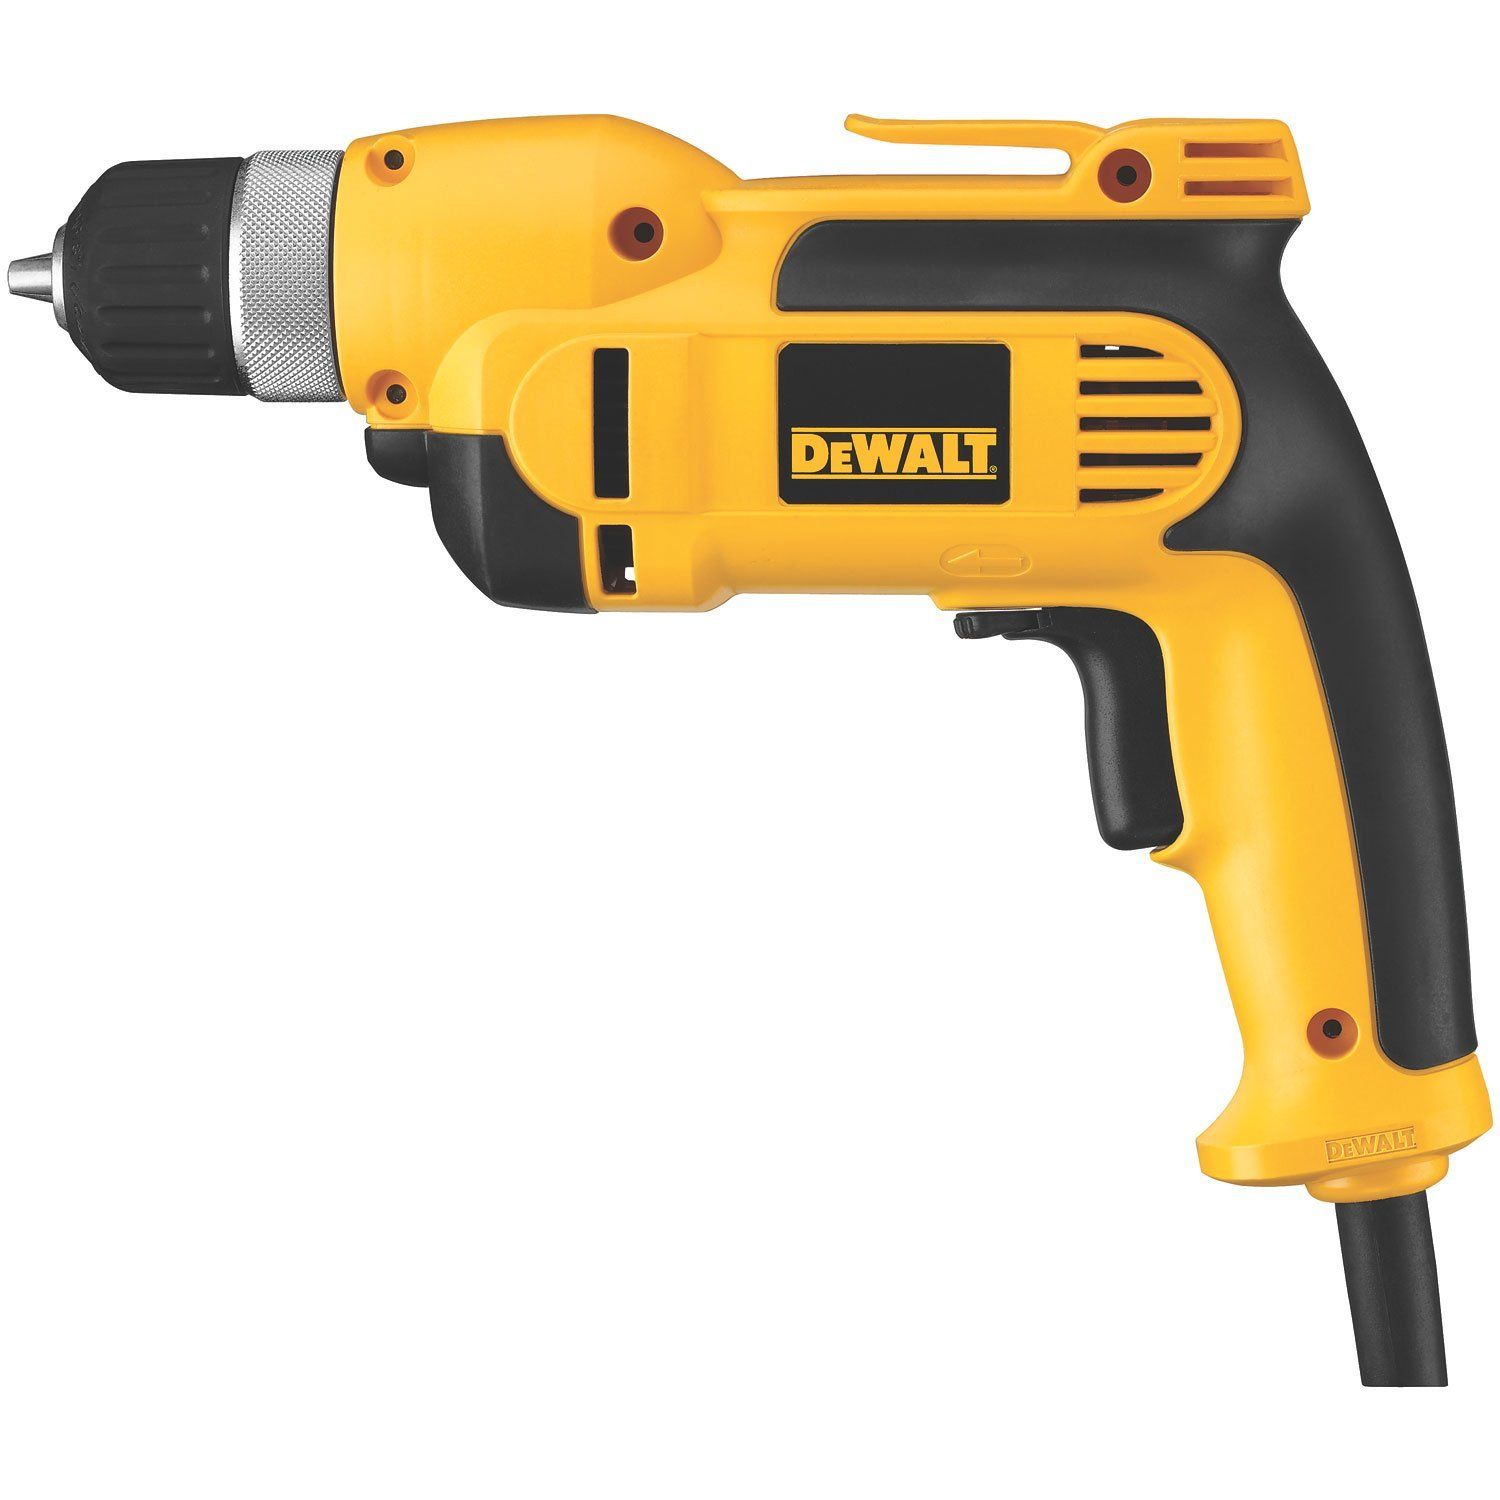 The Complete Guide to Buying, Using & Maintaining Power Drills